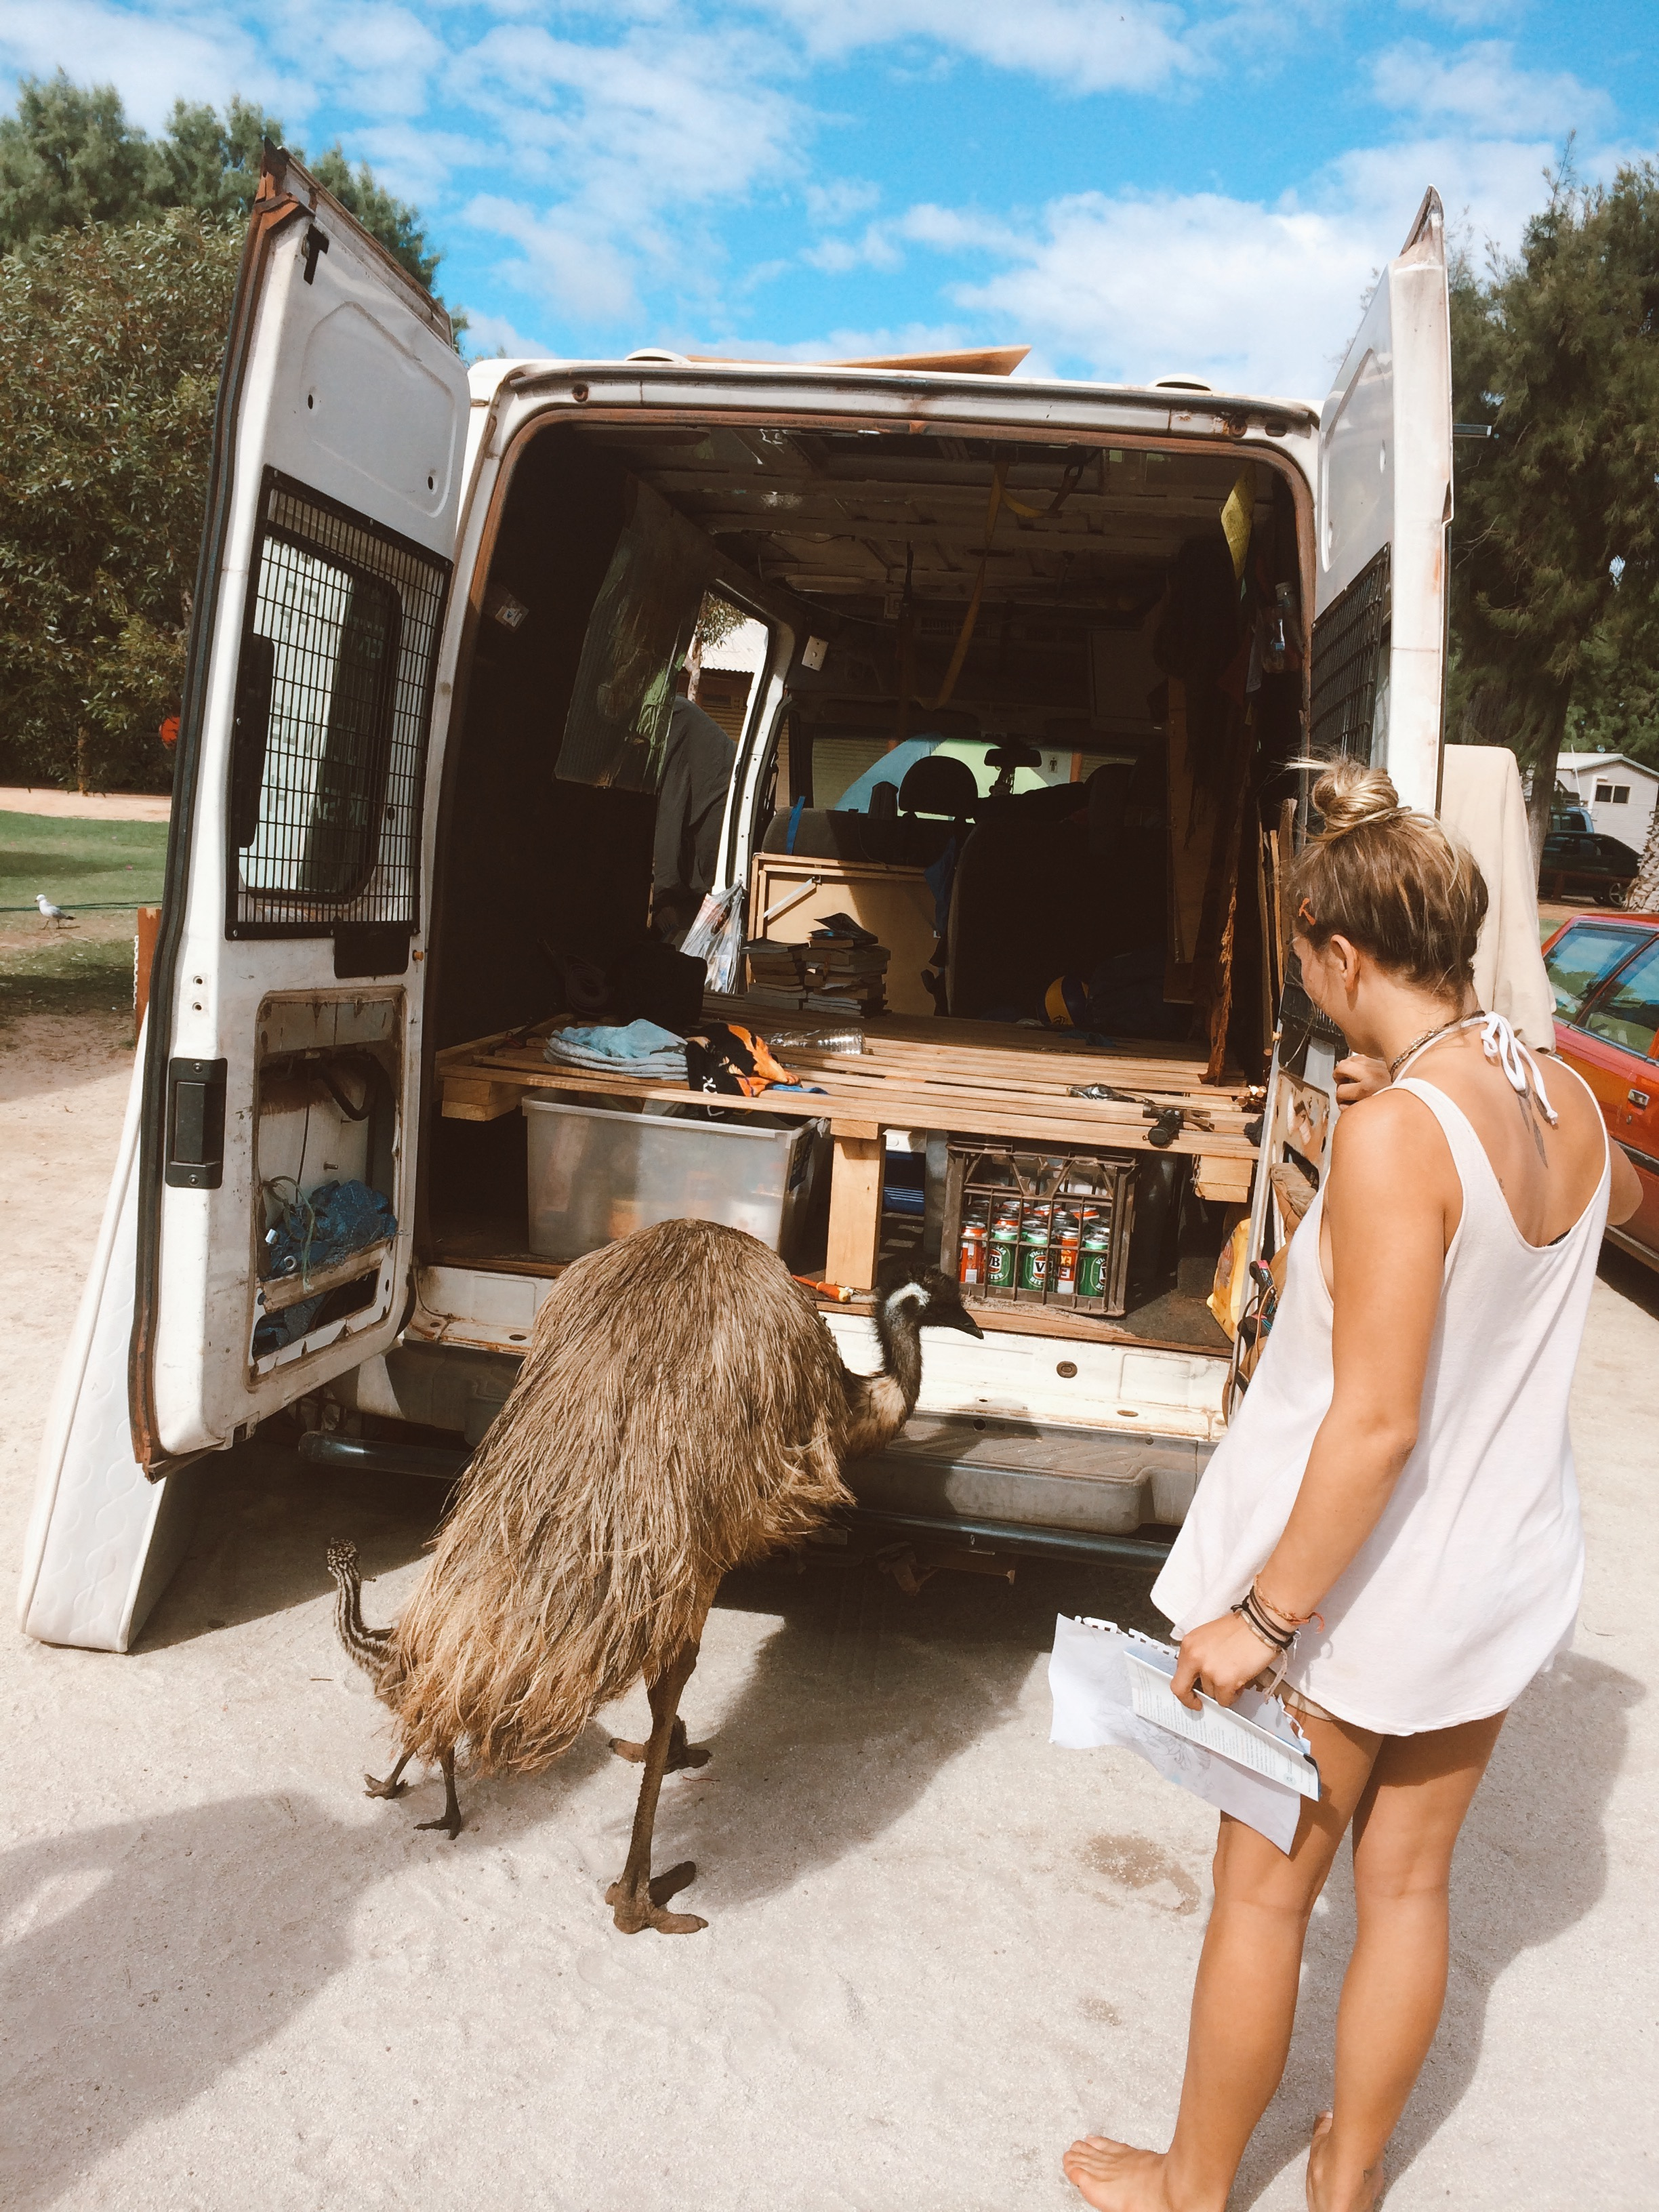 Truth bomb for the time-stressed: Cleaning days take the whole damn day. - My inner OCD LOVES ensuring that my home on wheels feels like sacred space. To balance the grubbiness of my being, it's a priority to keep the van tidy, fridge/esky organised and to stay on top of laundry (two day old hiking socks = turn off).